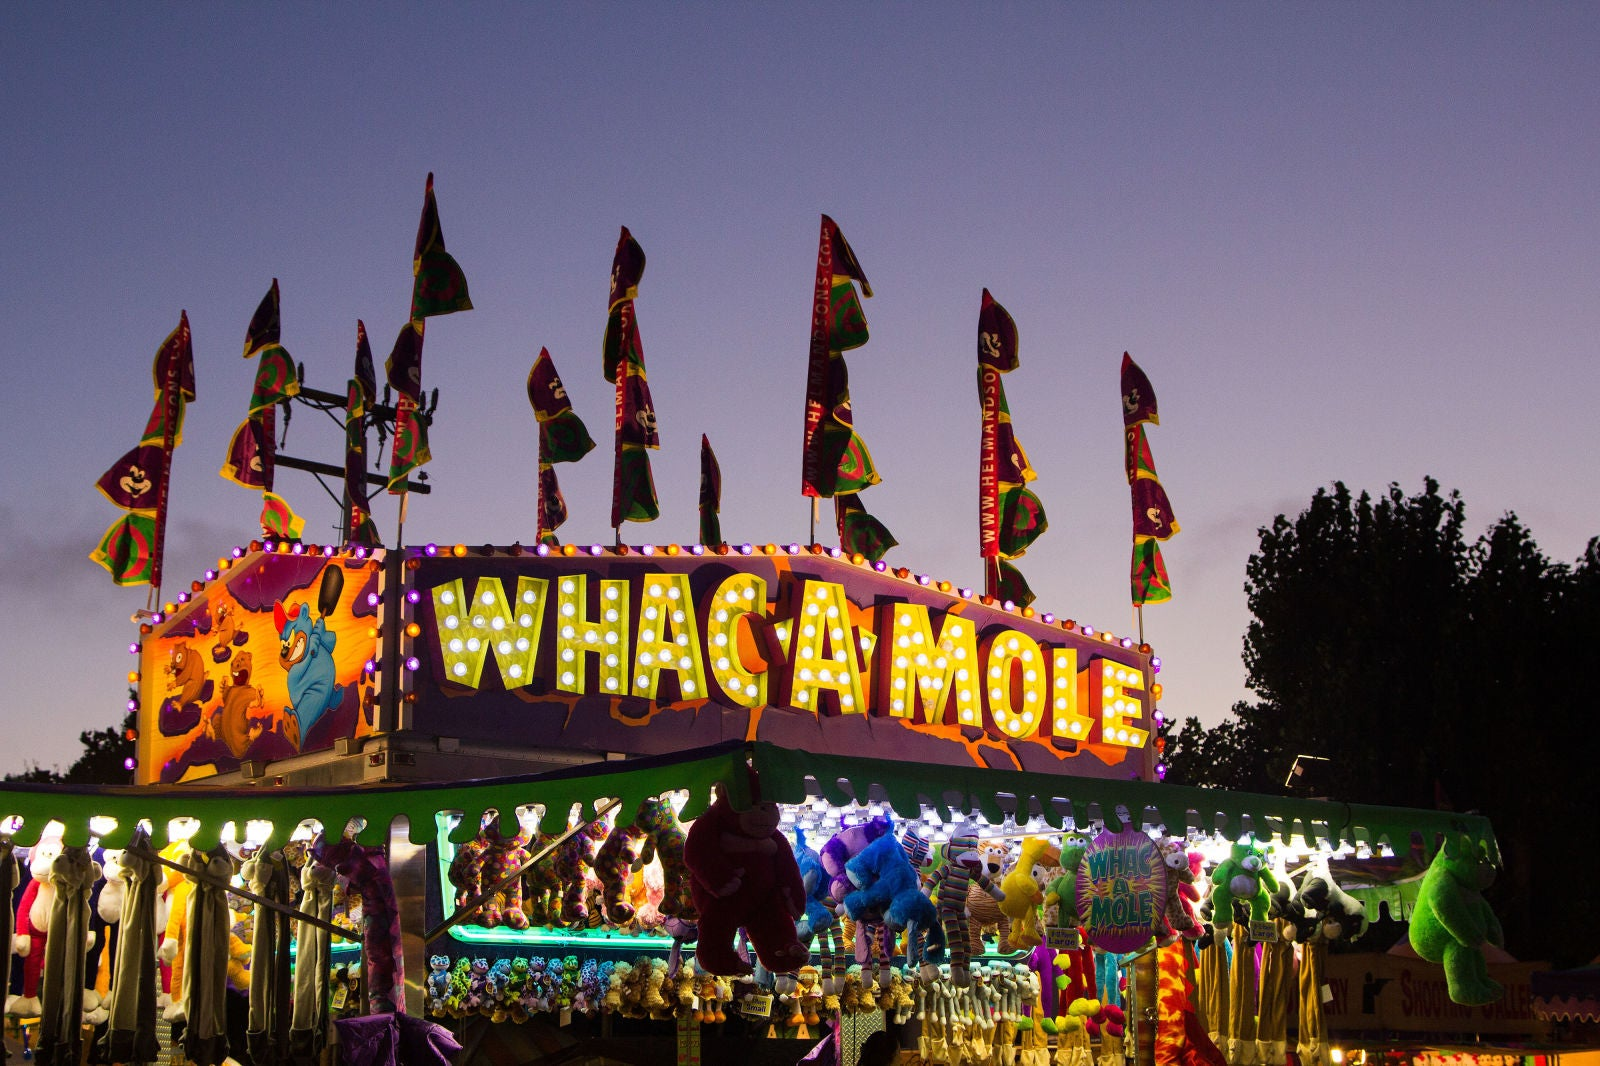 The Depressing Story Behind The Making Of Whac-a-Mole